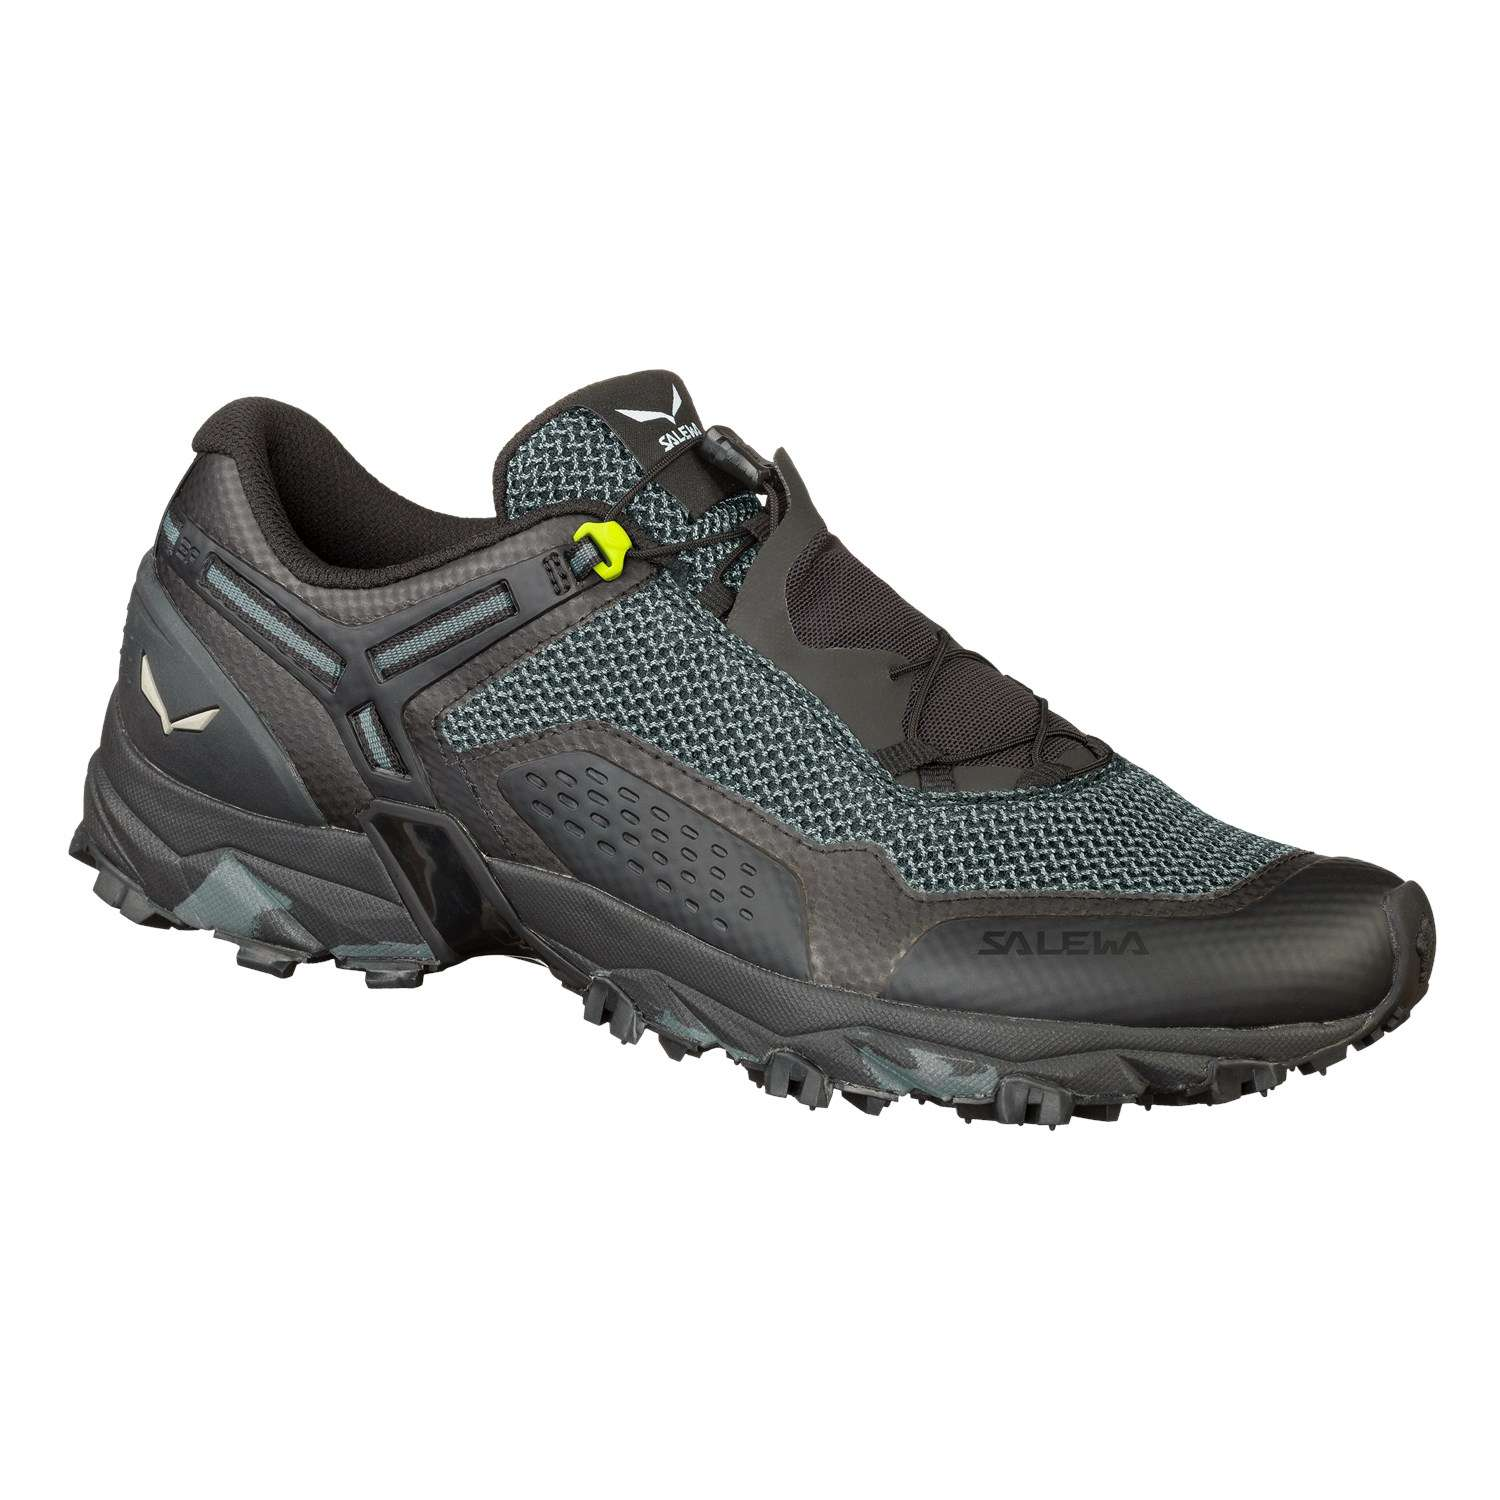 Salewa zapatos caballero botín de senderisml ultra Train 2 Man Salewa nuevo *